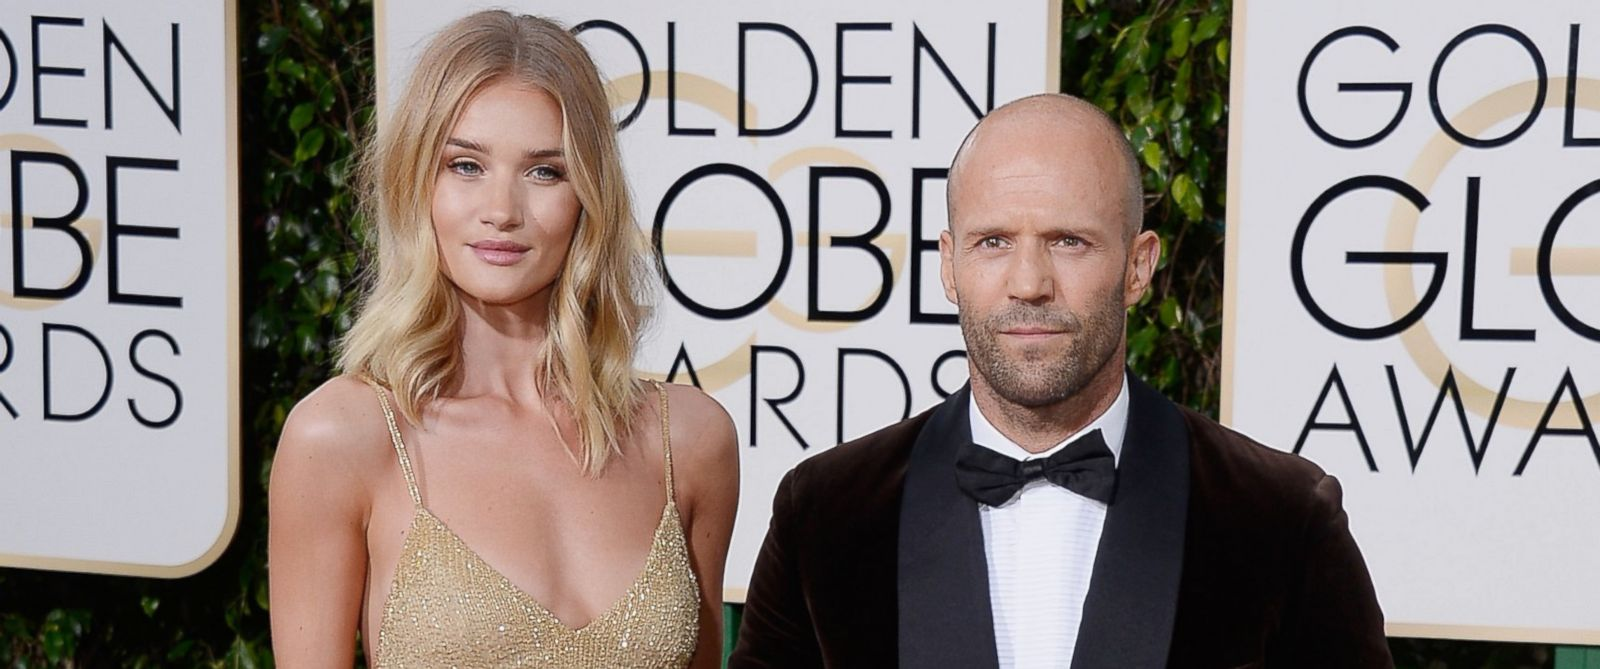 PHOTO: Actors Rosie Huntington-Whiteley and Jason Statham arrive to the 73rd Annual Golden Globe Awards held at the Beverly Hilton Hotel, Jan. 10, 2016.